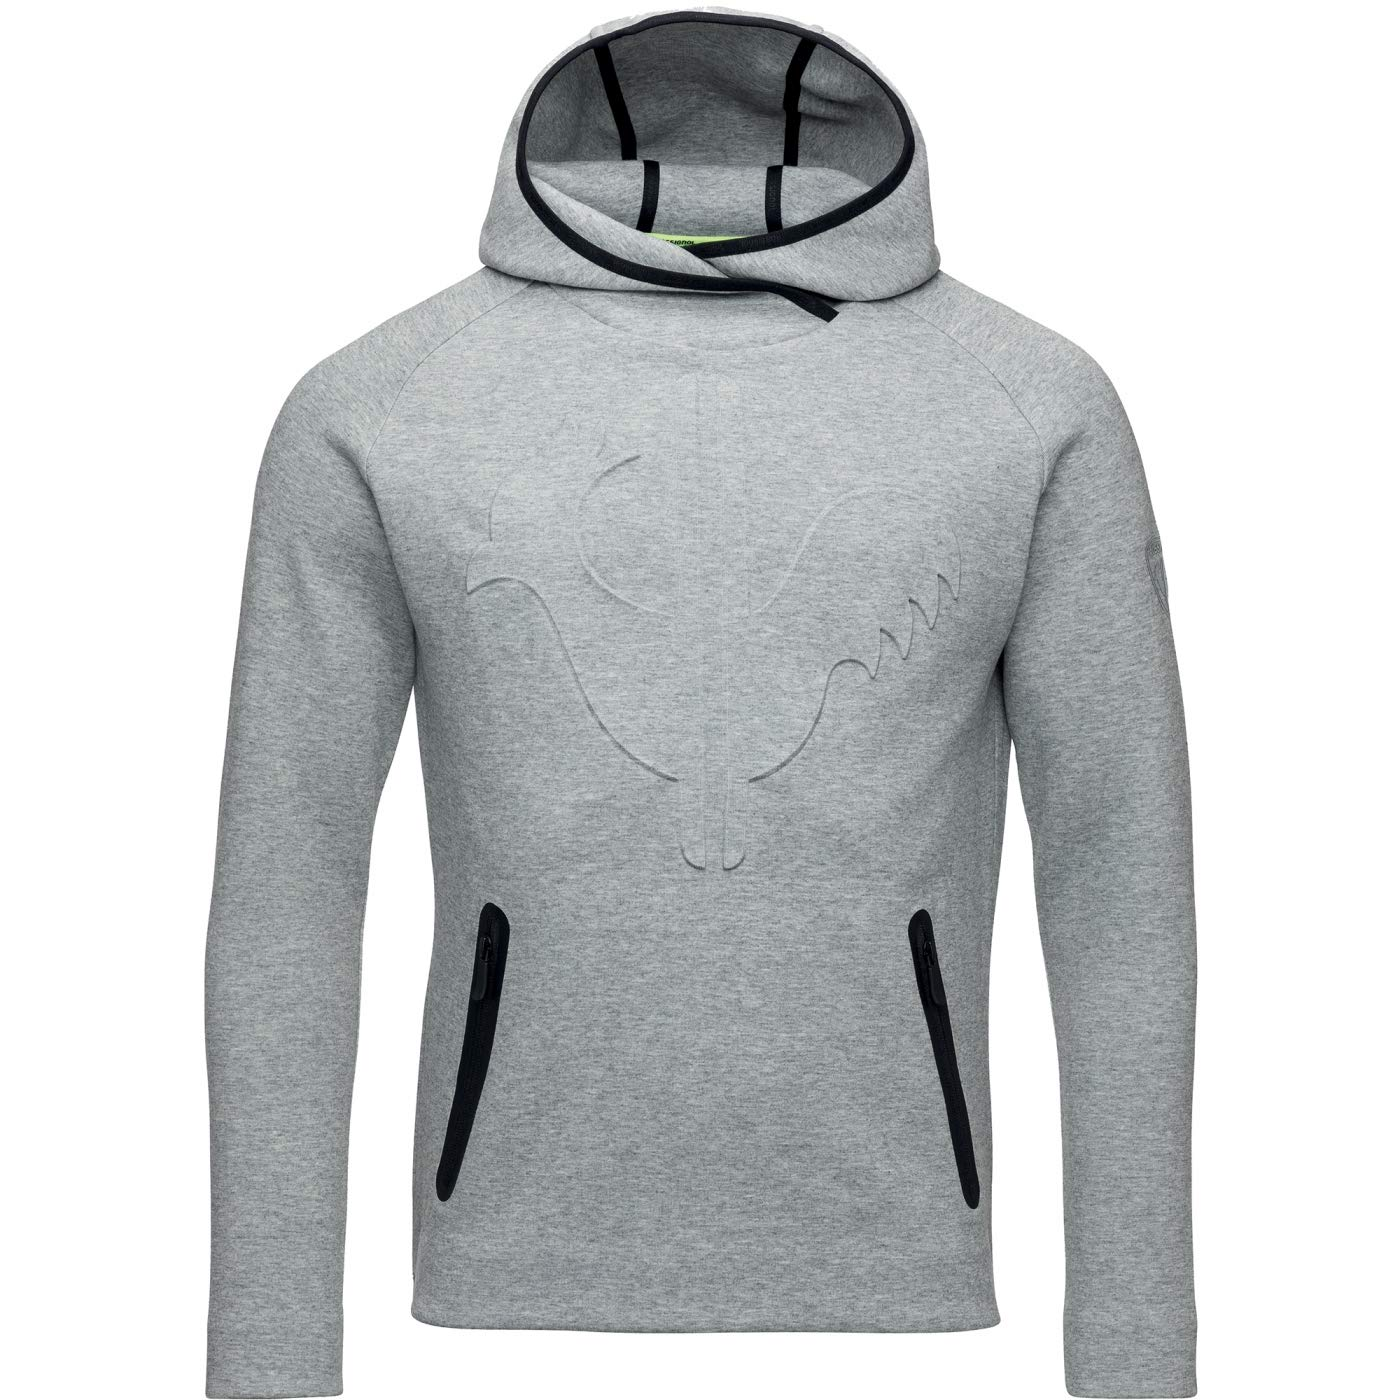 Rossignol Lifetech Hoody Pullover (Heather-Grau)